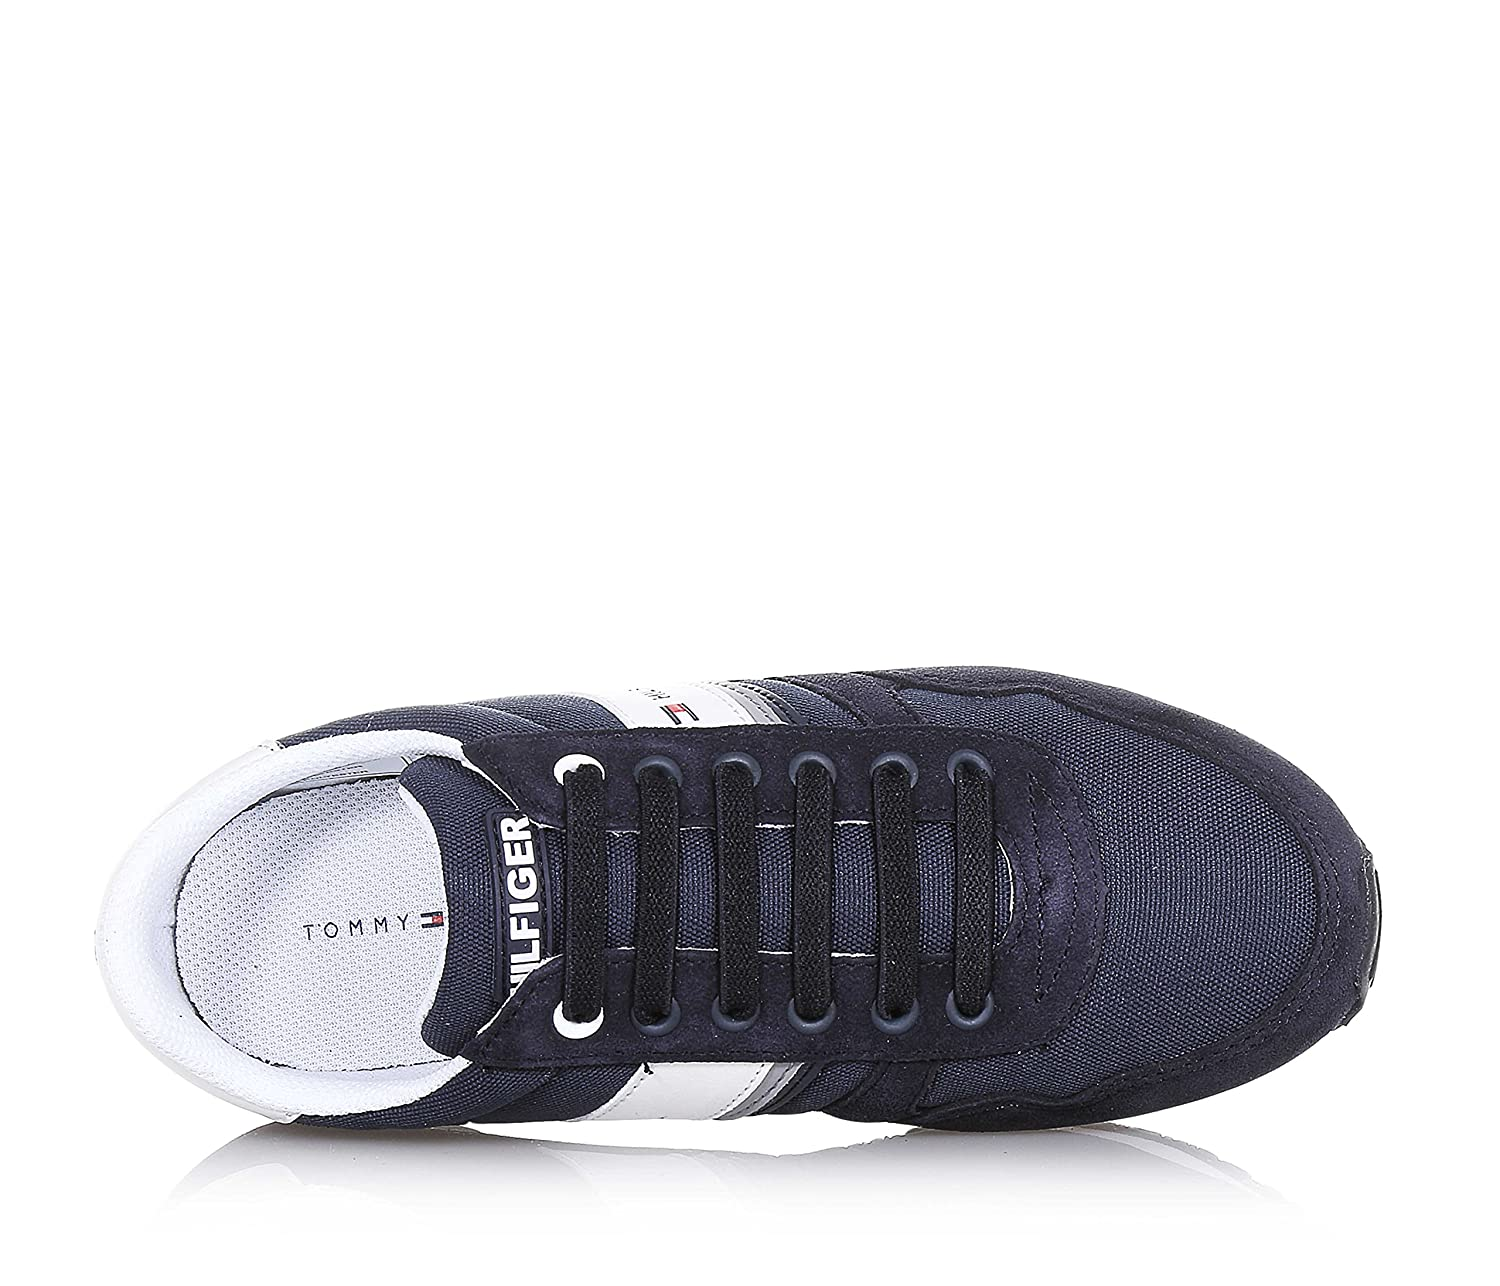 24ff9d05 TOMMY HILFIGER MAXWELL JR 3C MIDNIGHT SNEAKERS CAMOSCIO BLU: Amazon.co.uk:  Shoes & Bags